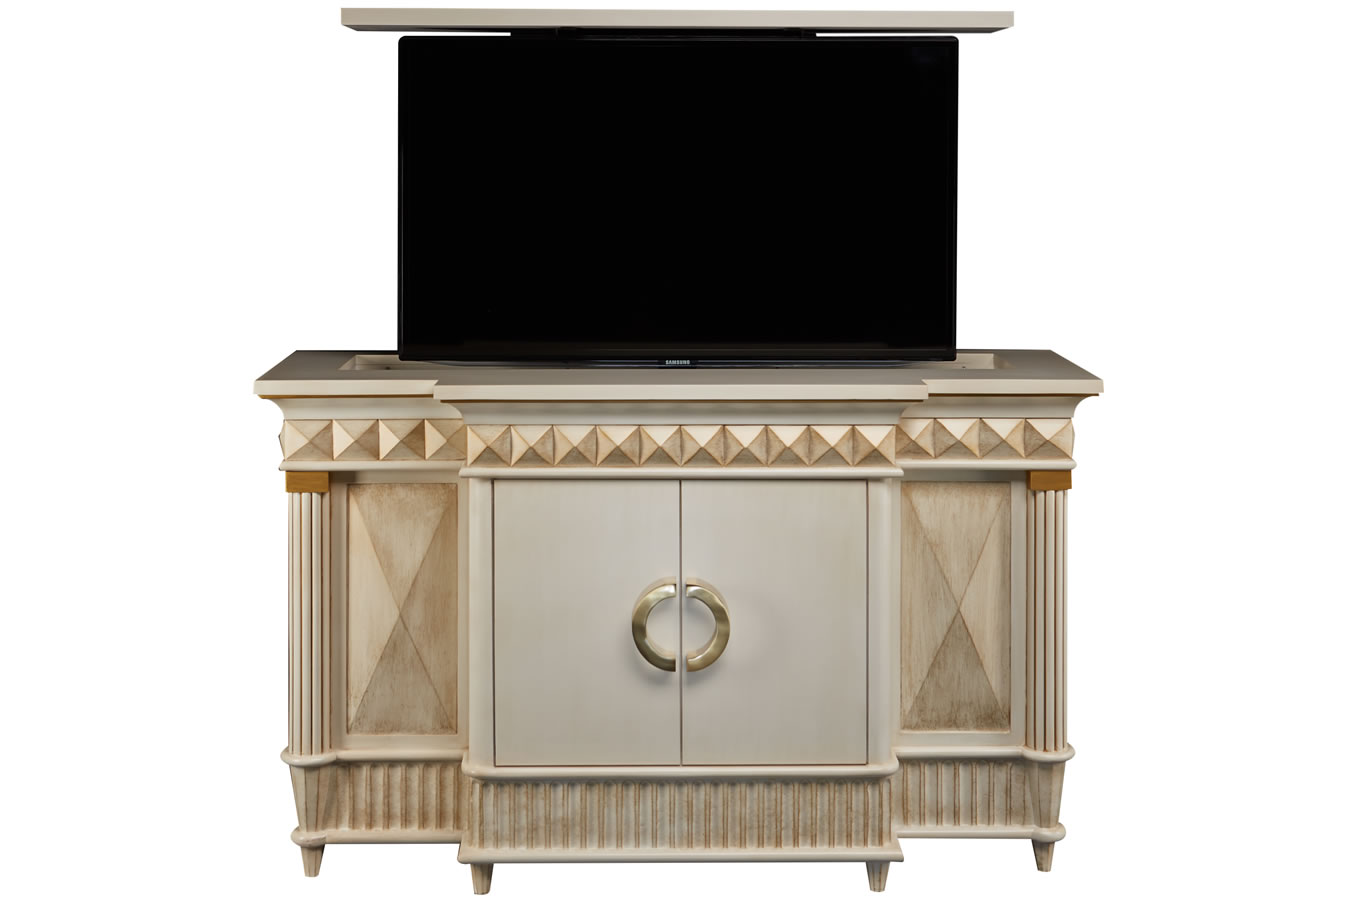 Octavious TV lift cabinet with antique gold glaze created by Cabinet Tronix - Custom Designed Flat Screen TV Lift Furniture